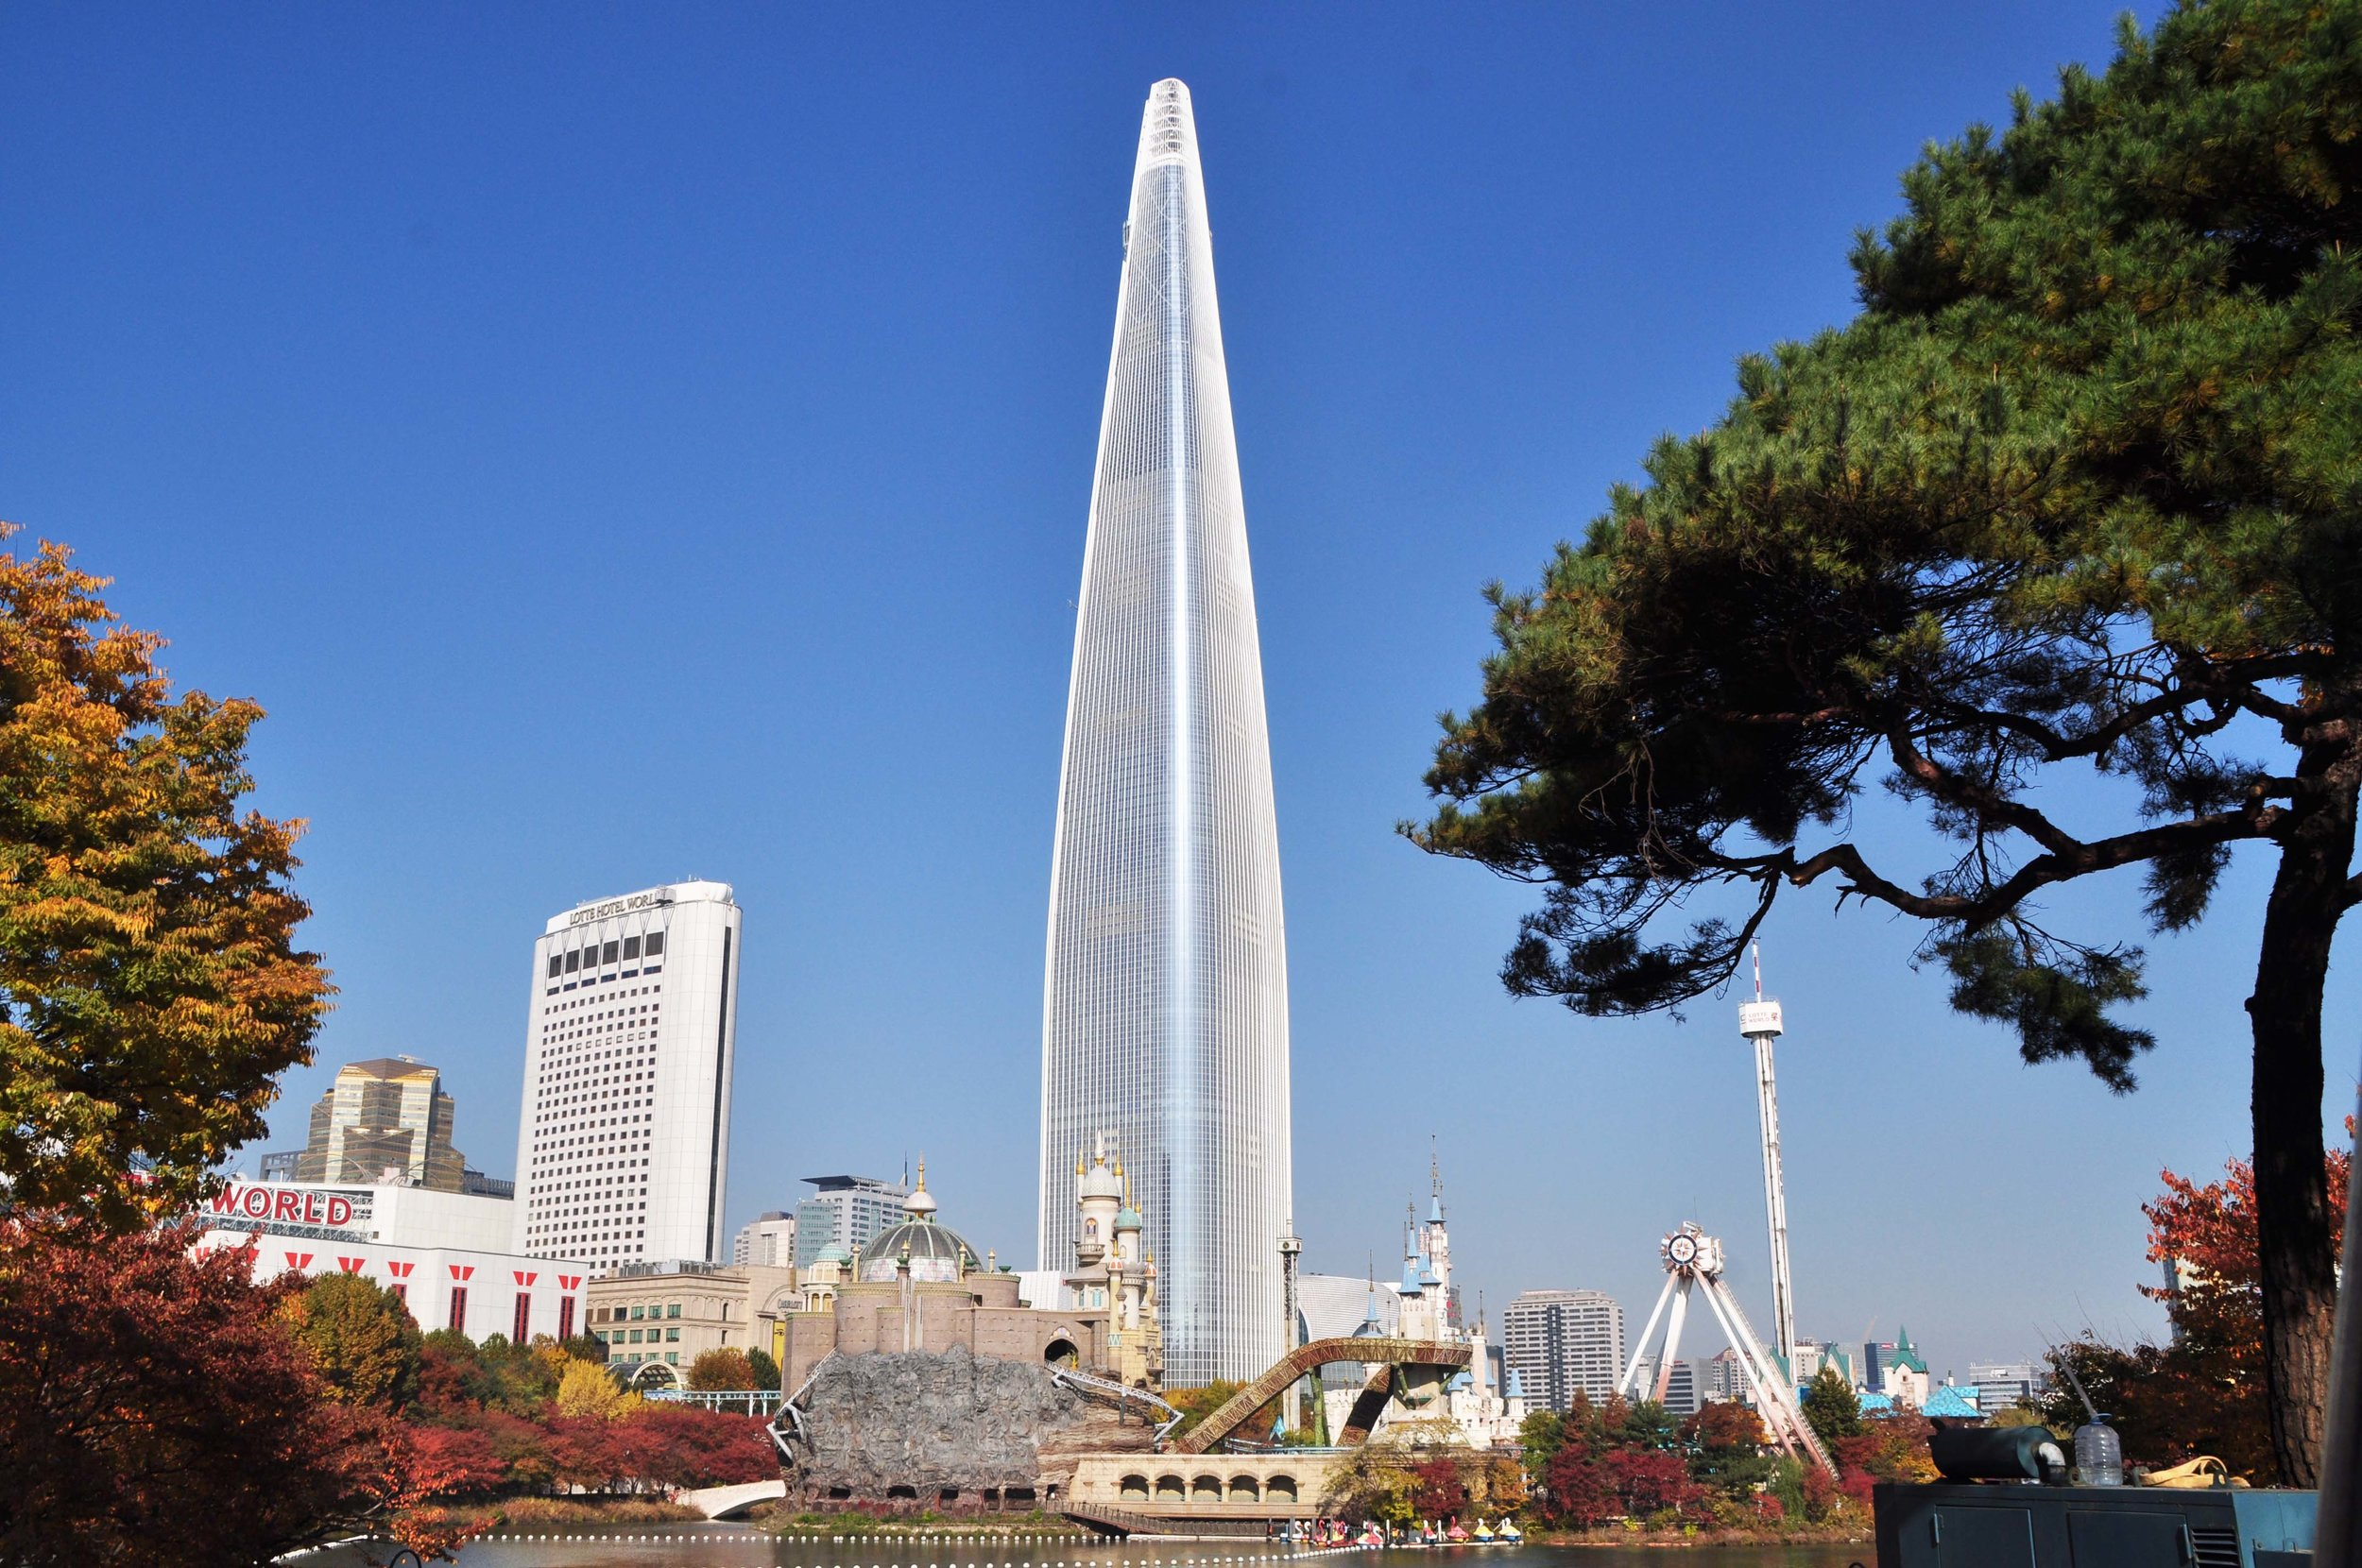 The Lotte World Tower, the 5th tallest building in the world, couldn't be designed and built without structural engineers.